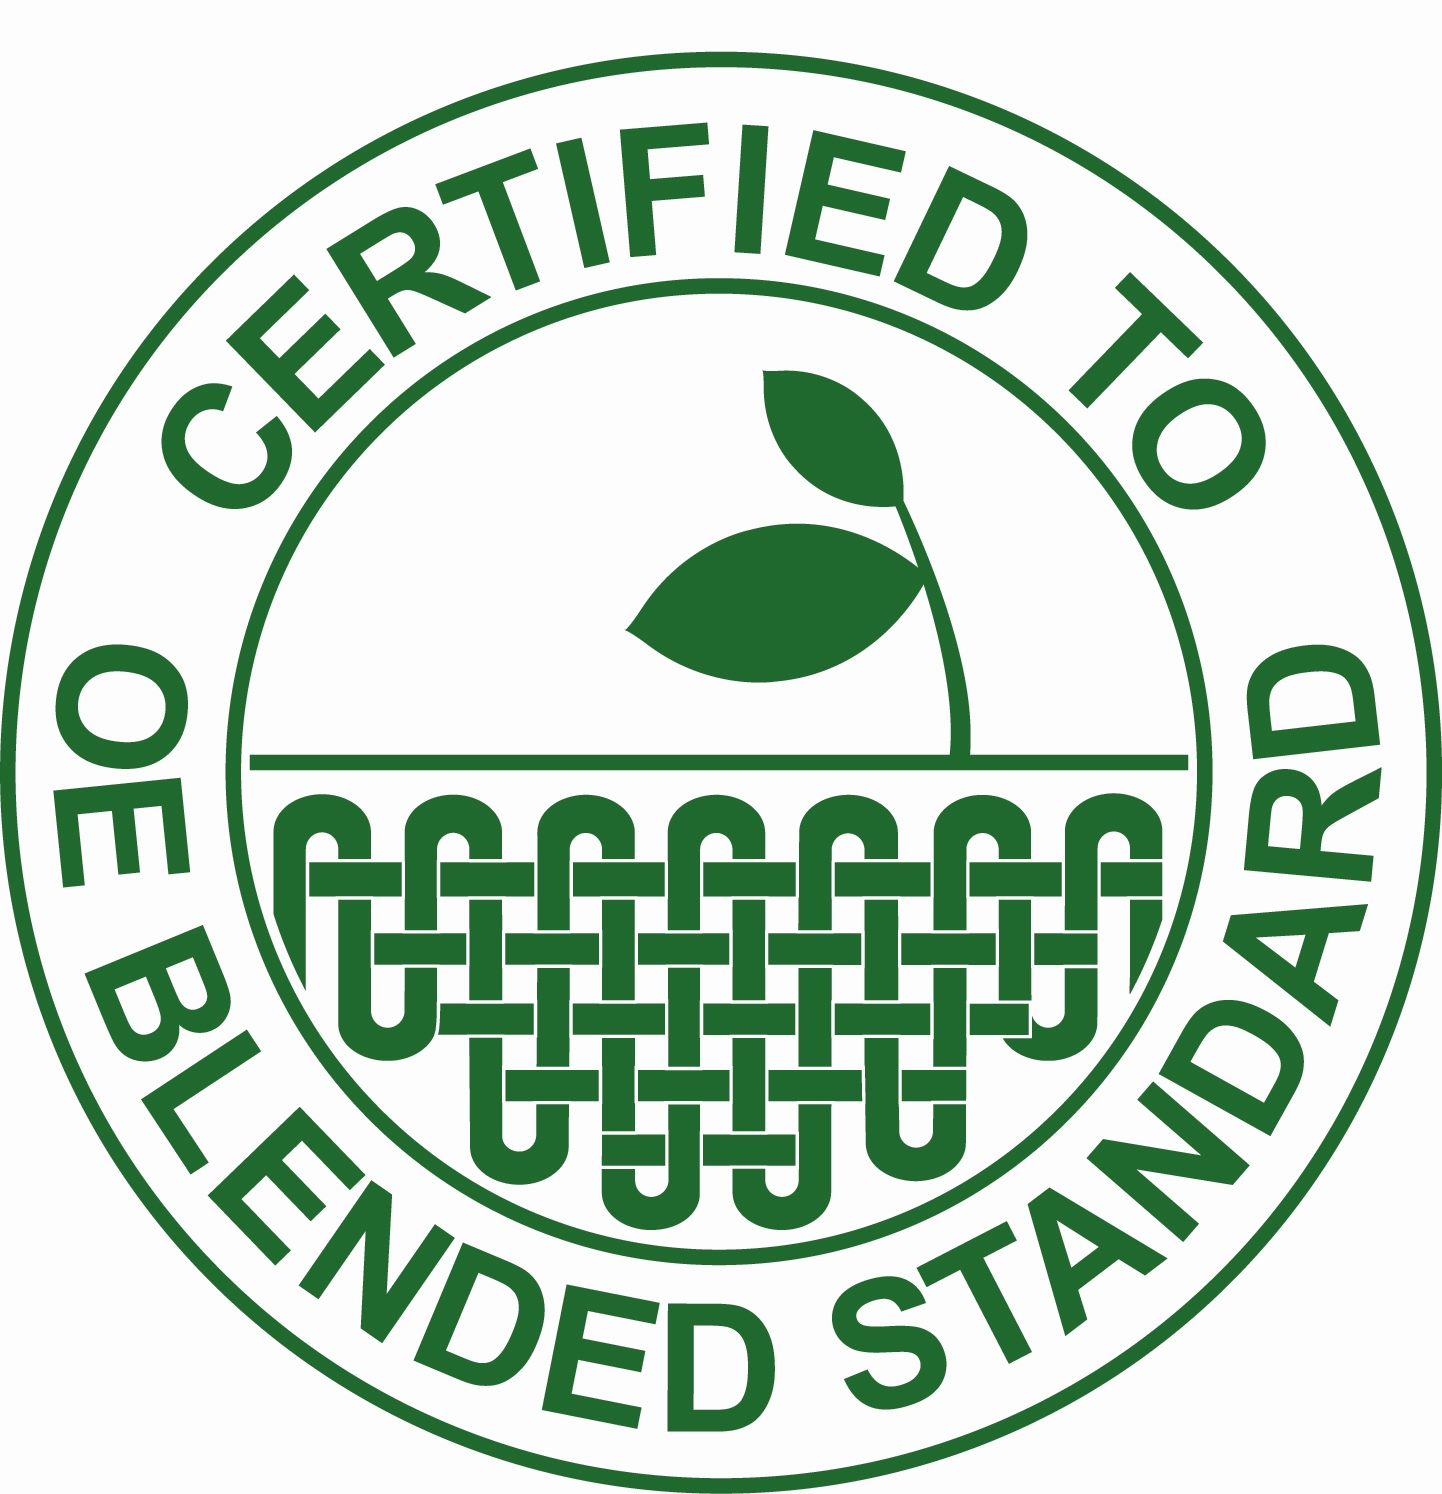 certified to the of blended standard